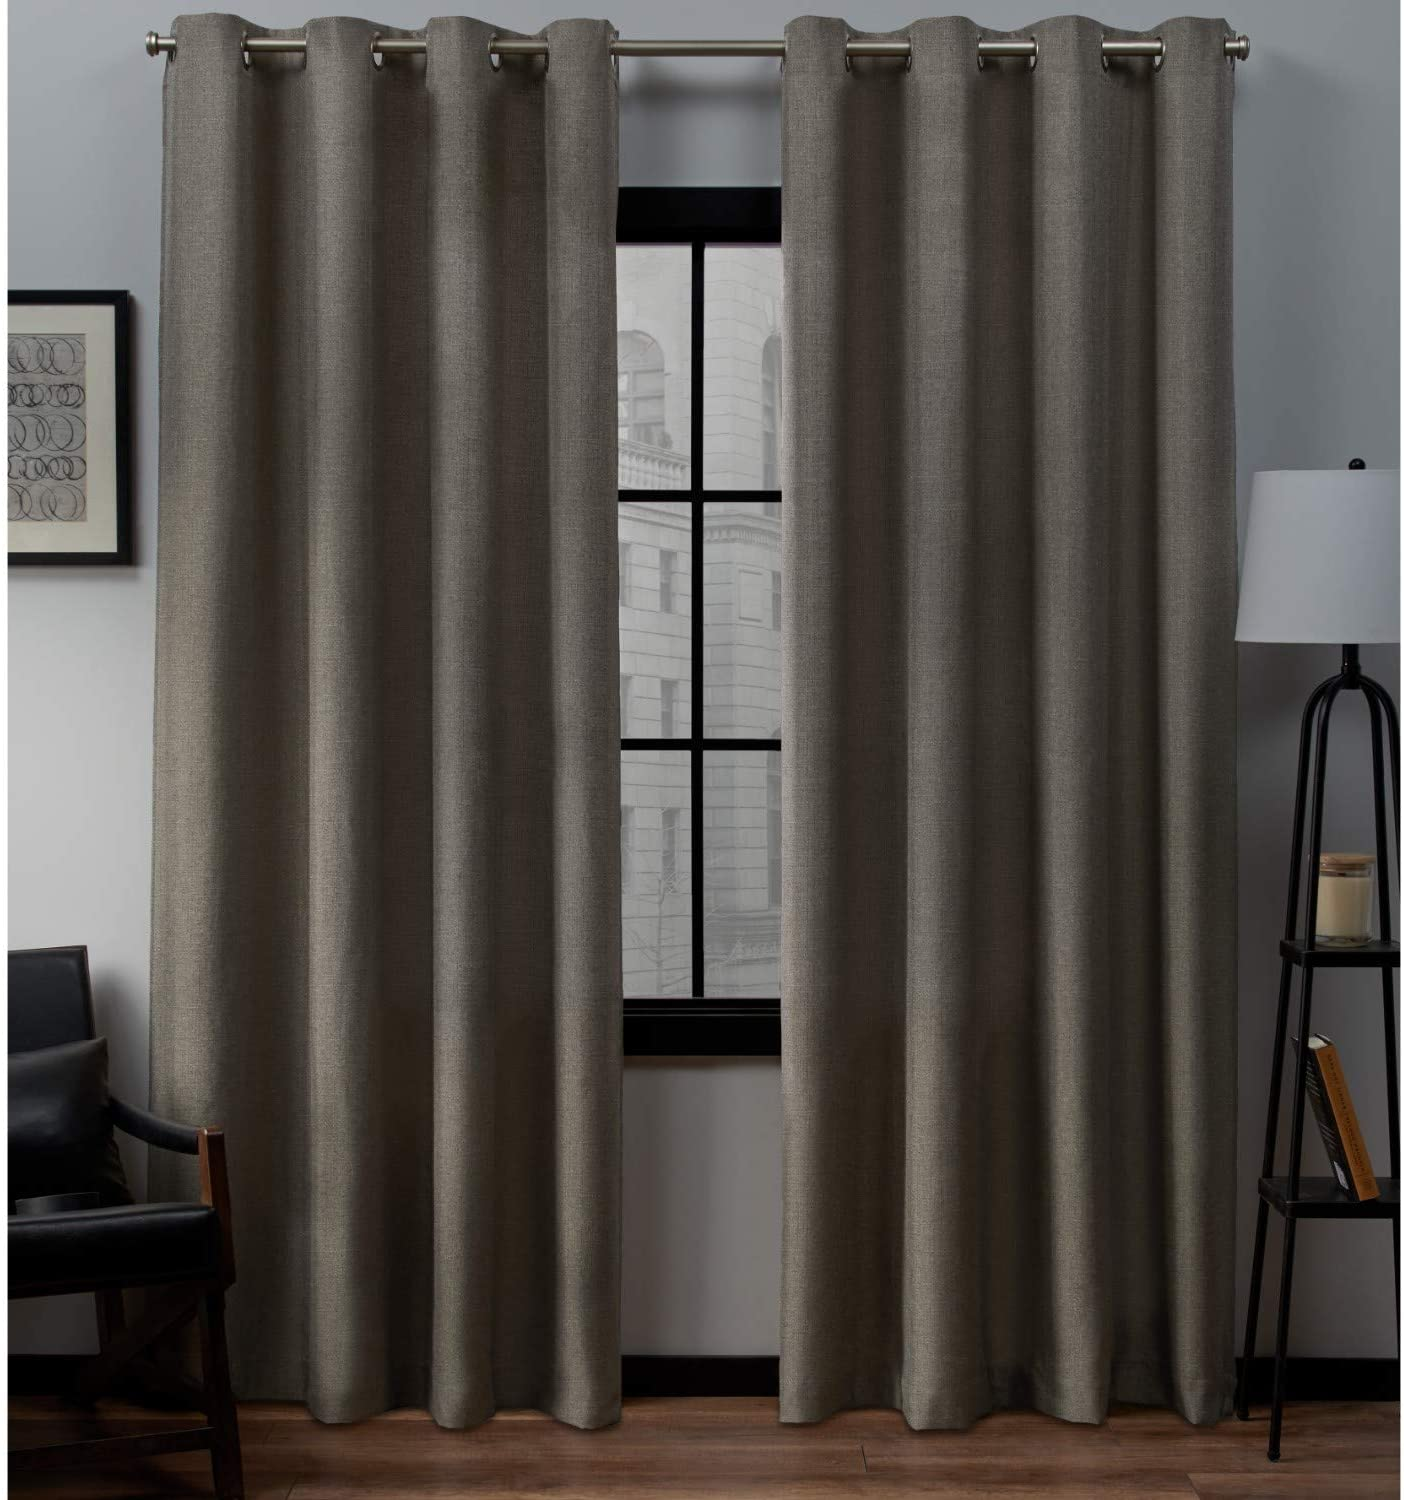 Exclusive Home Curtains Loha Linen Grommet Top Curtain Panel Pair, 54x84, Cafe